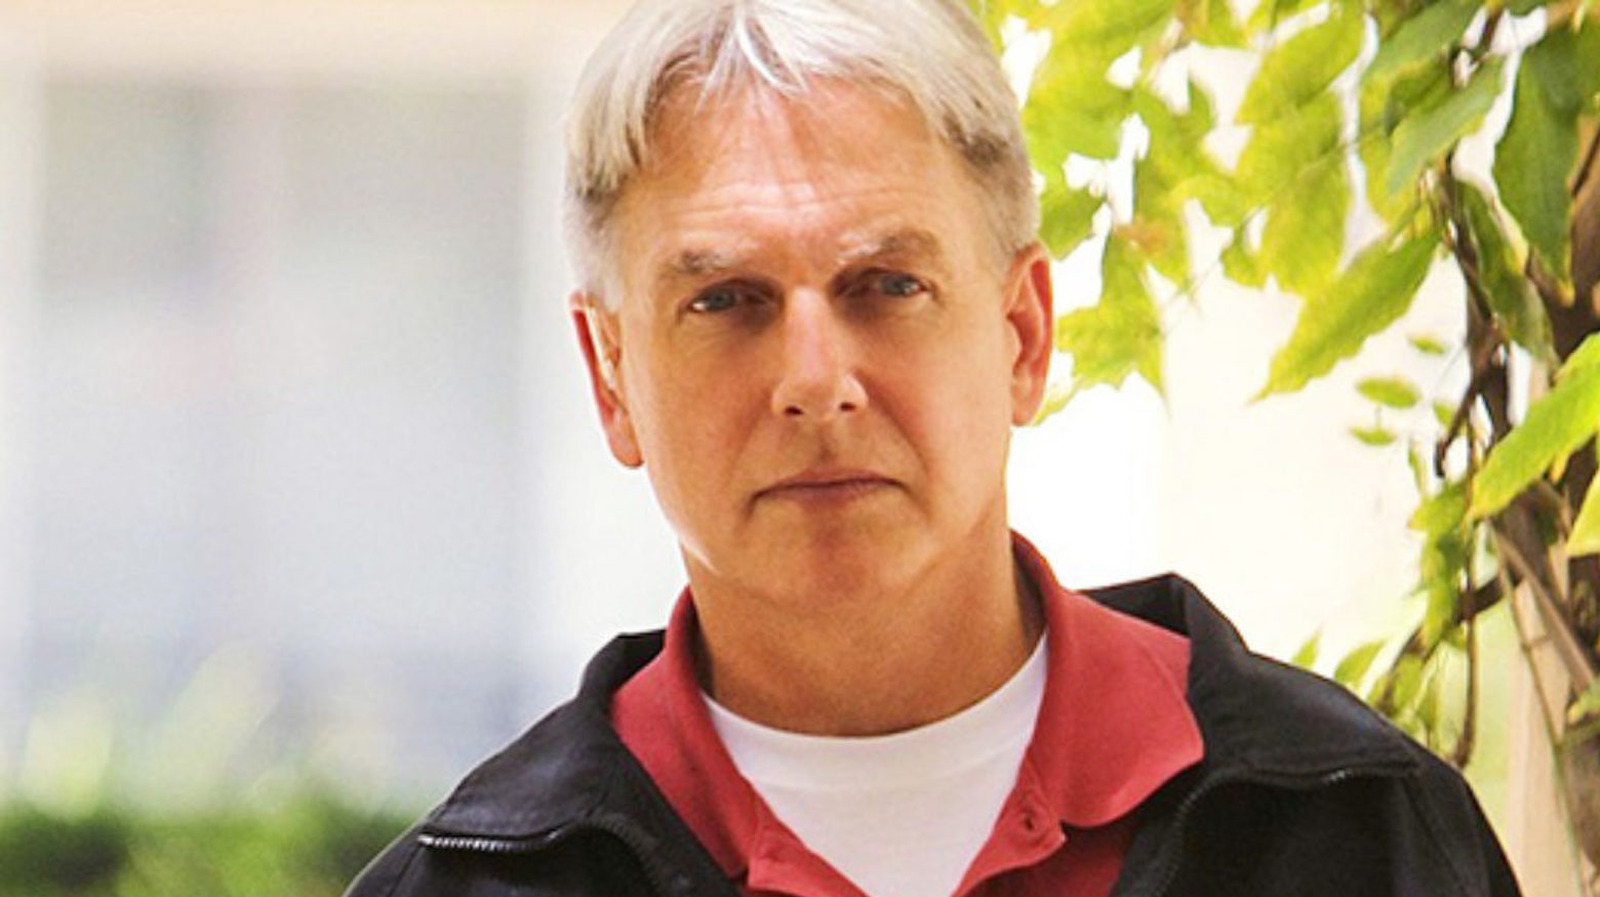 The Part Of Gibbs' Backstory That Doesn't Make Sense To NCIS Fans